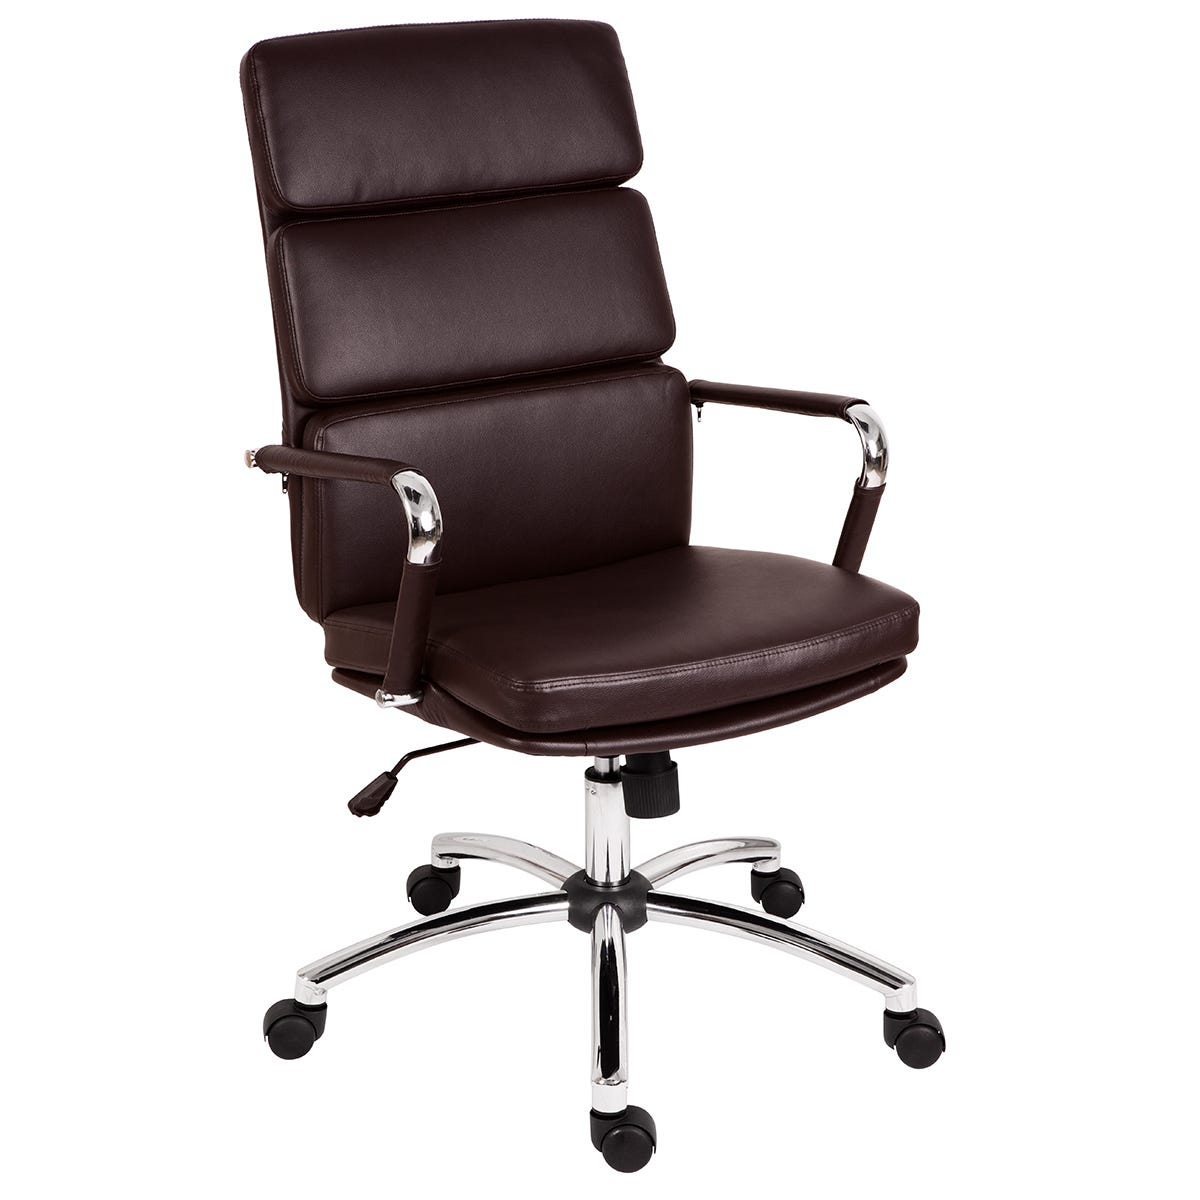 Teknik Deco Faux Leather Executive Office Chair - Brown